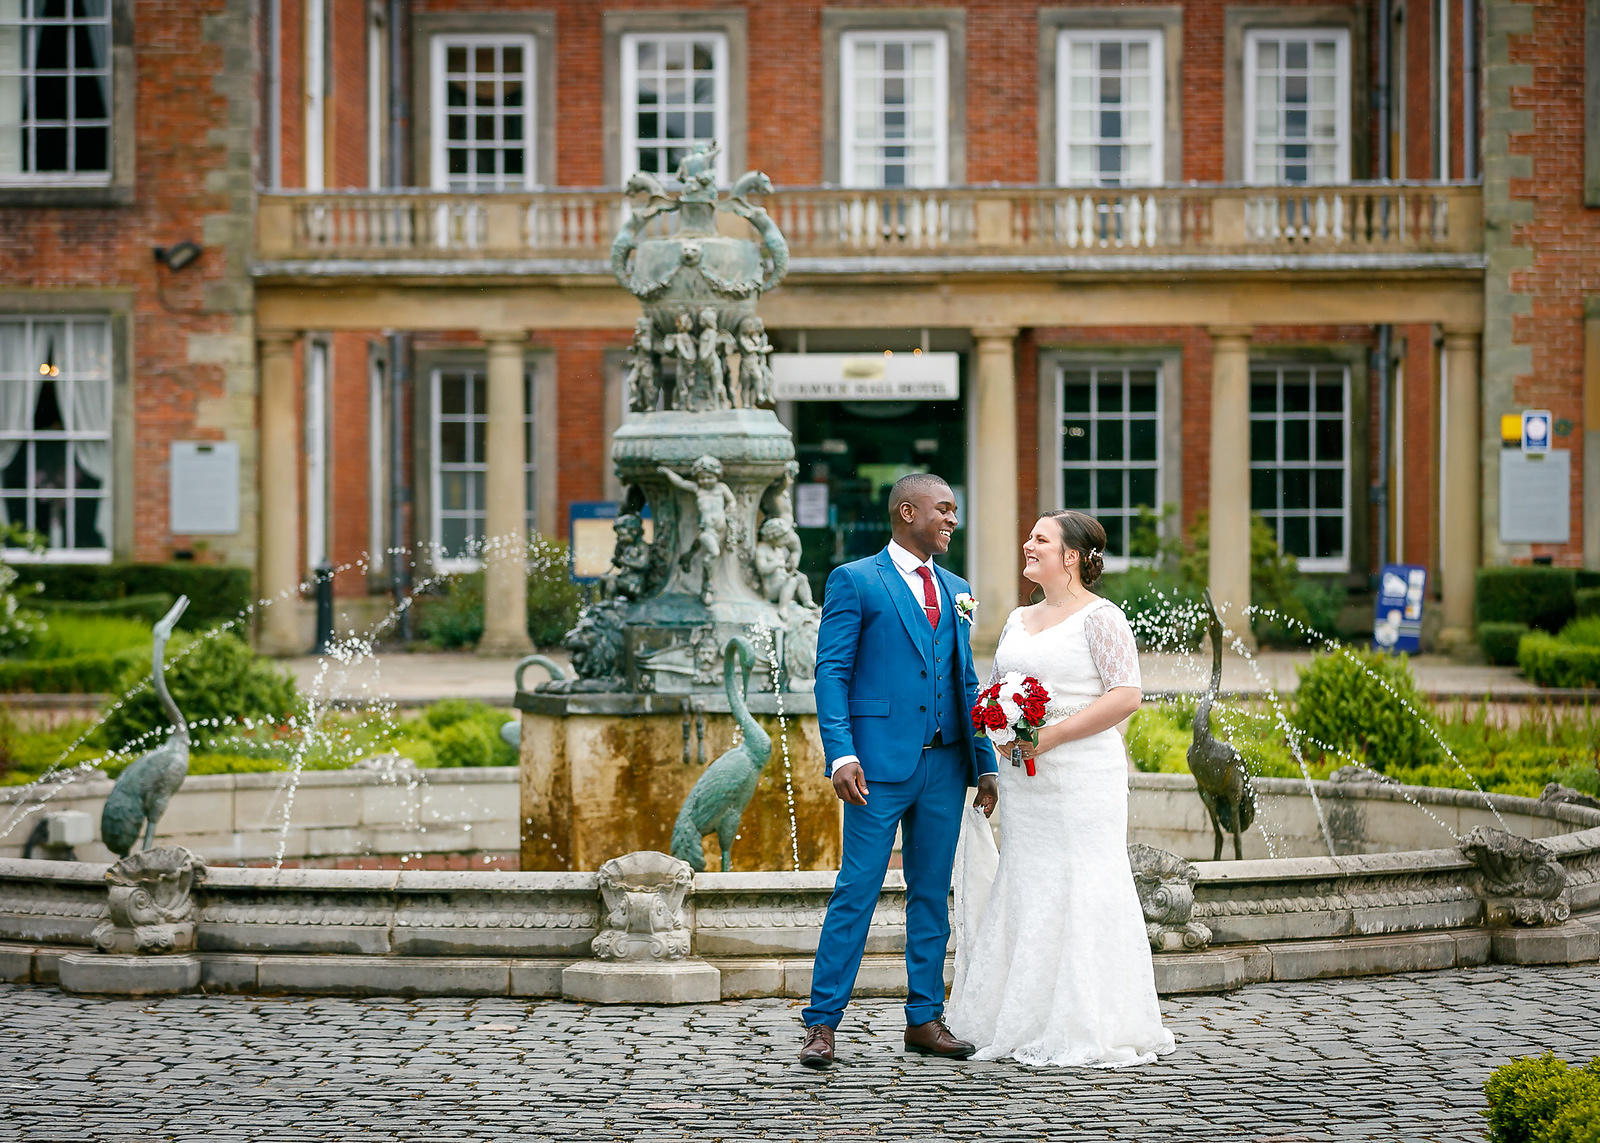 Wedding at Colwick Hall, Nottingham, Nottinghamshire, UK